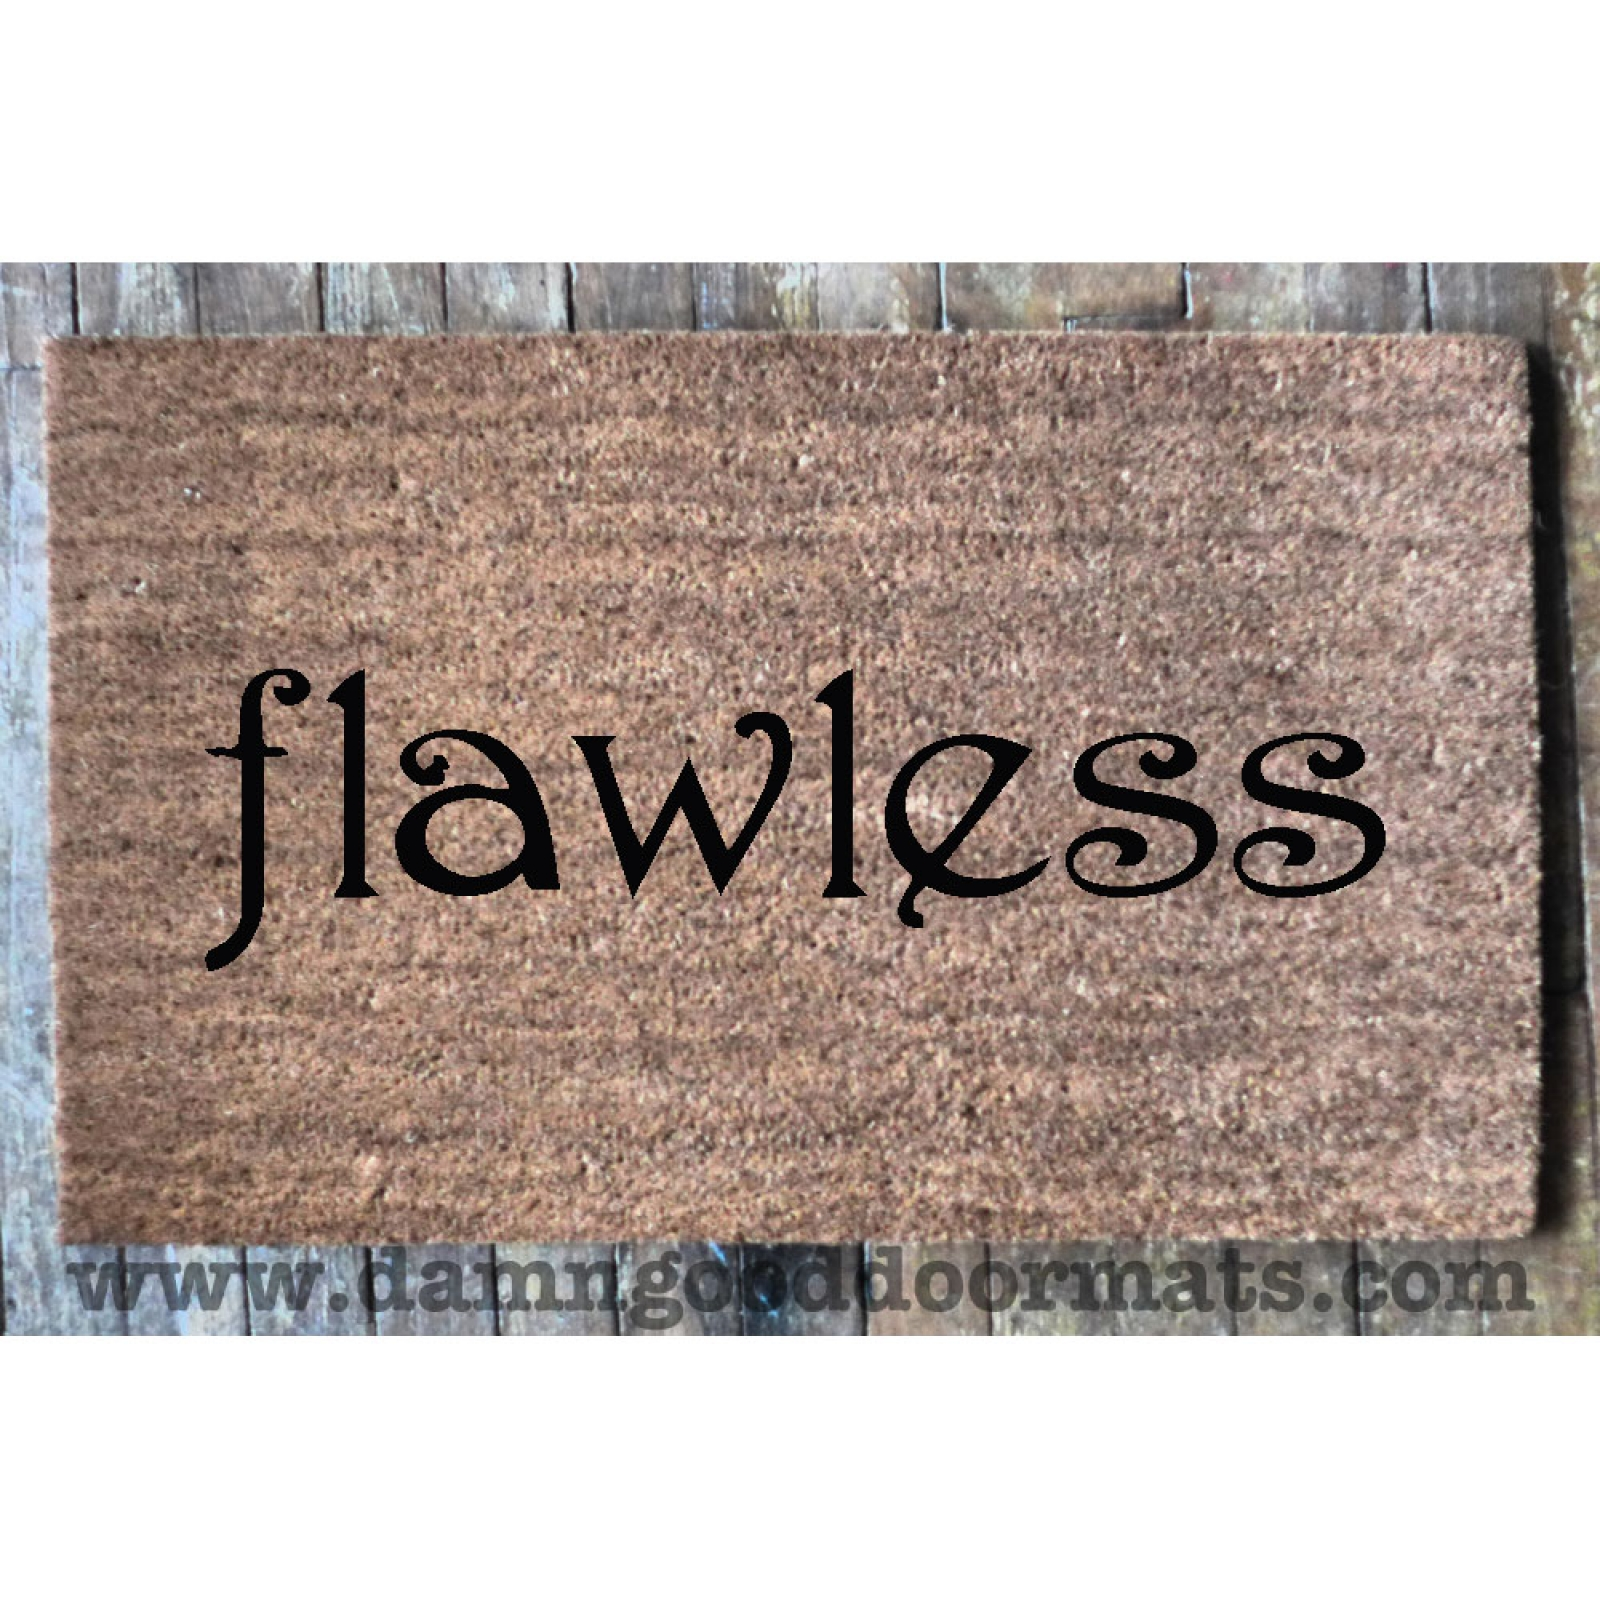 Flawless Mean Girls Doormat Damn Good Doormats